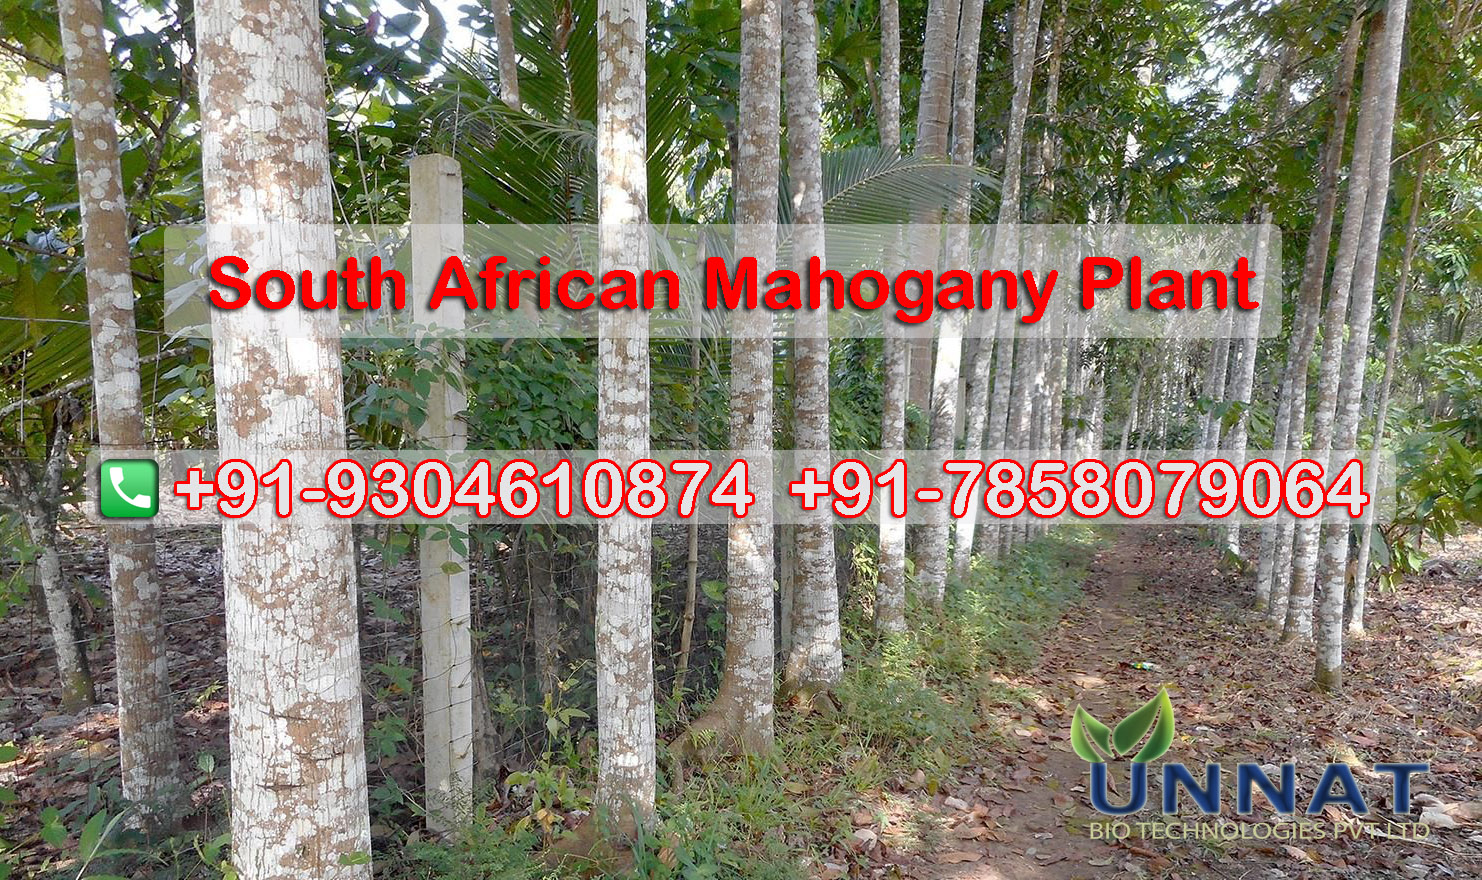 South African Mahogany Plant Supplier in Patna